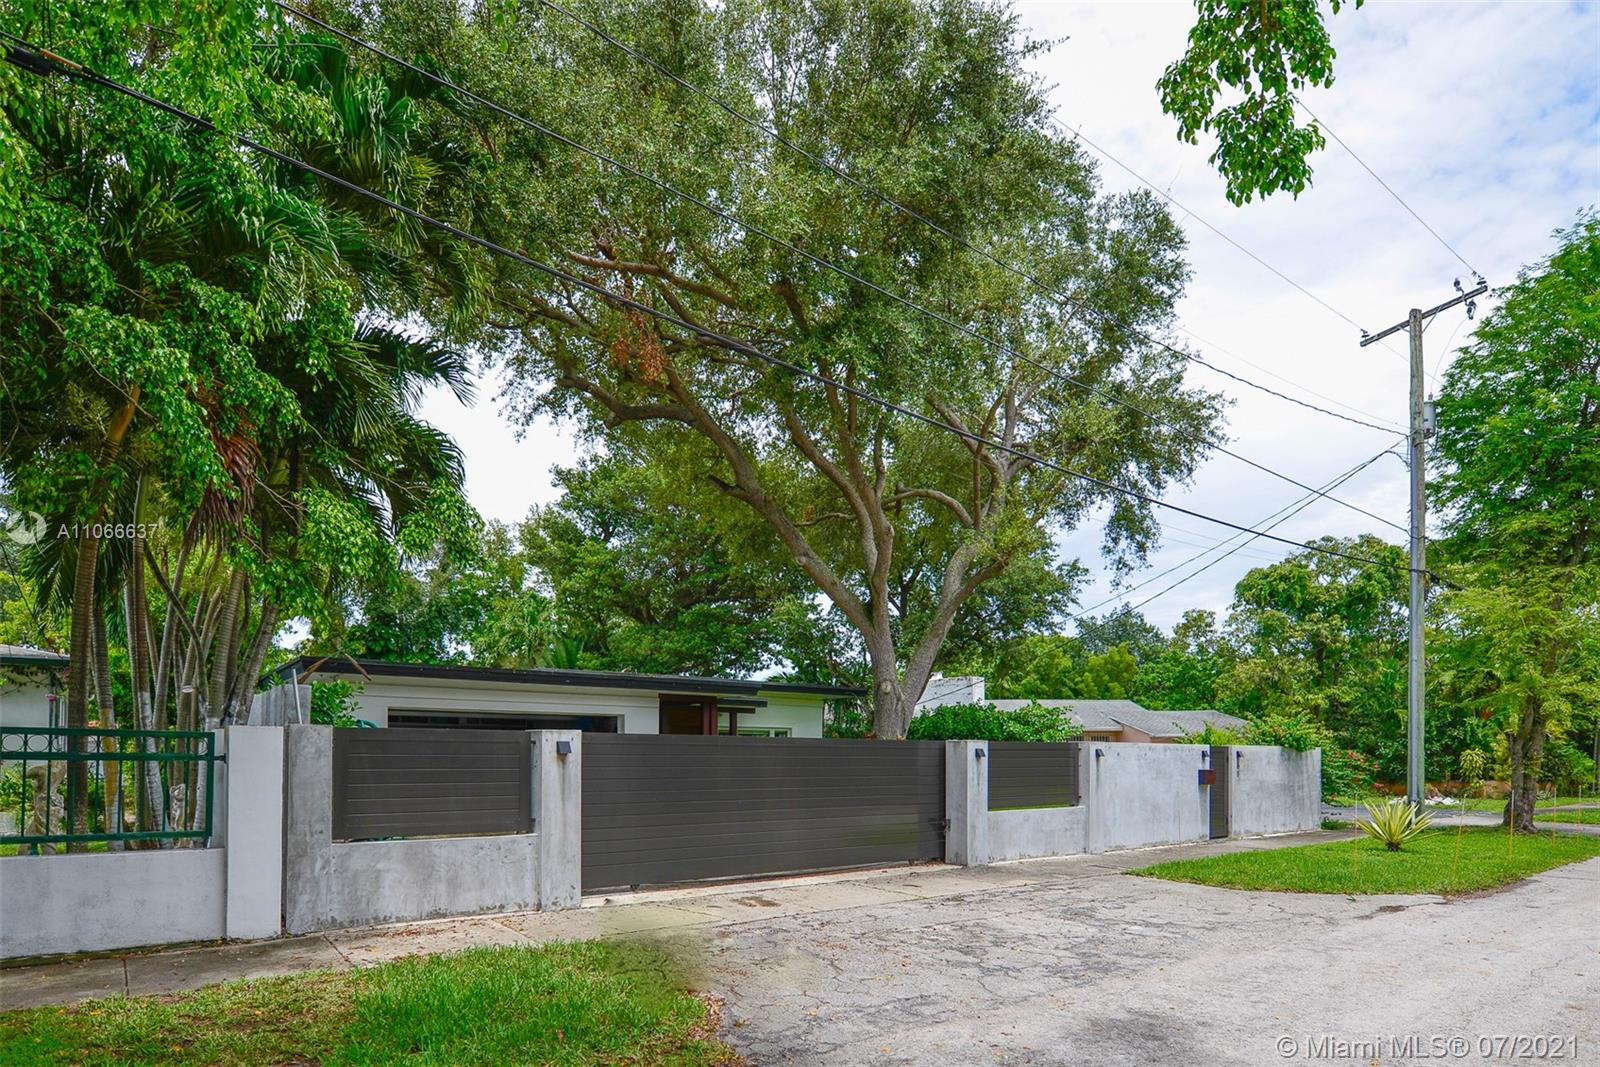 Sleek and sophisticated single family home in the luxurious neighborhood of VISCAYA.  This house was gutted in 2018 and renovated 100%. This 3 Bed / 3 Bath and ½ Bath is seated on a 10,500 SF Lot. Modern elegant touches abound including contemporary lighting, Impact rated doors and windows throughout, wood flooring, Italian-inspired kitchen to entertain, PROPANE 22KW GENERATOR, NEW HVAC's, Electric, Plumbing, Double Car Garage, Automatic gate, central station monitored alarm and surveillance system. Also, this home is completed automated by SAVANT Technology. Control the HVAC, lights, sound, alarm from your phone!  Minutes from Brickell City Center, Banking District, Downtown Miami, Port of Miami, Sports Arena, Arsht Center, Coconut Grove, key Biscayne, Coral Gables, & Miami Airport